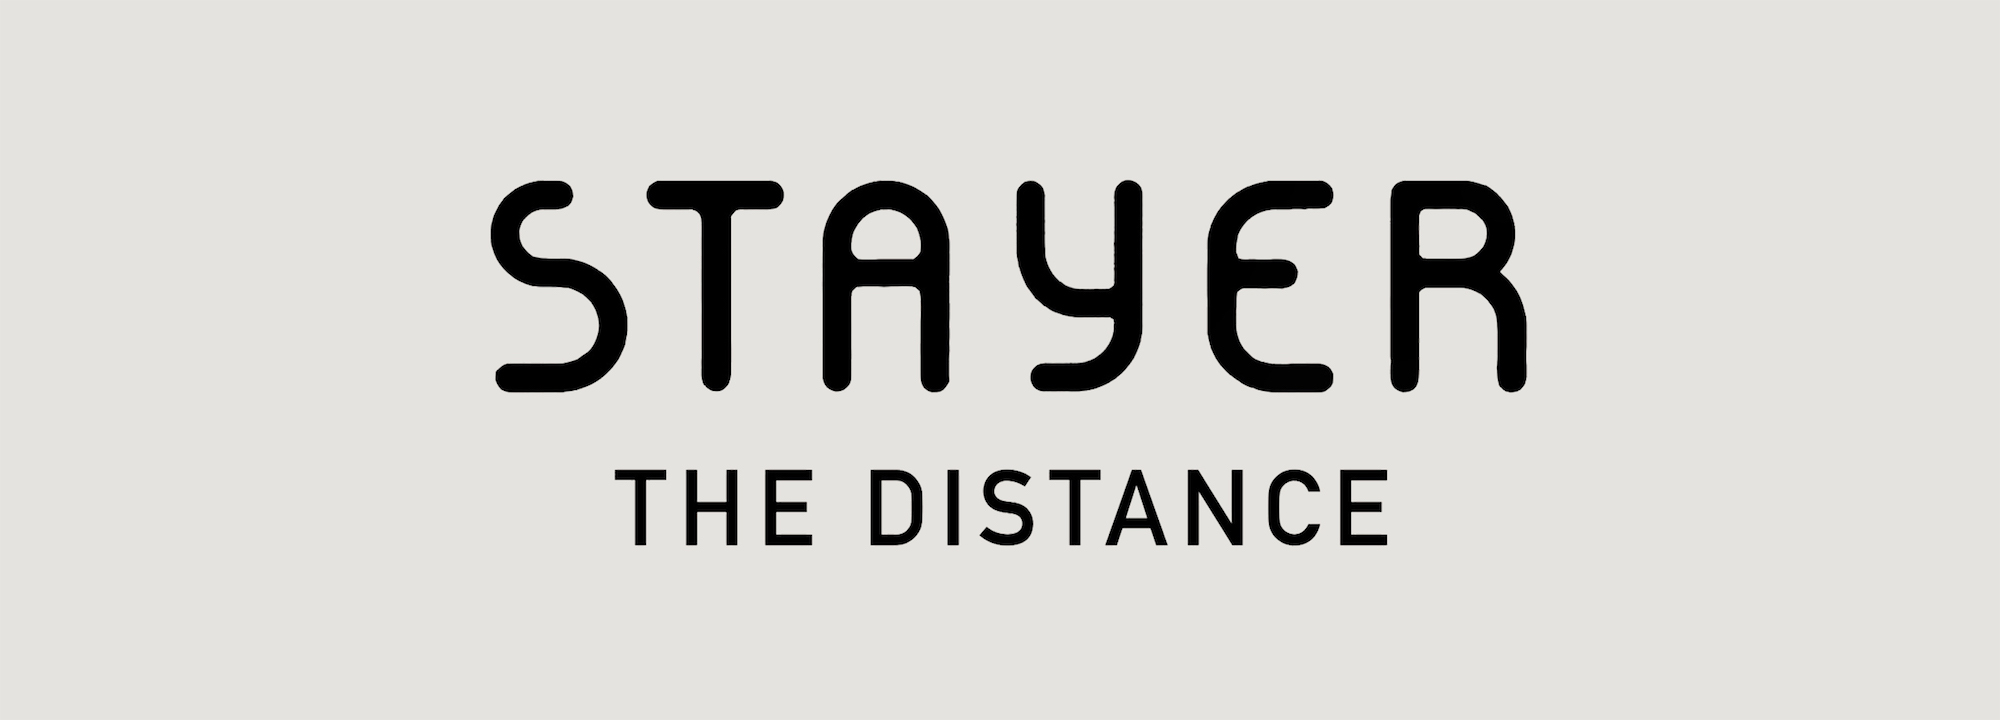 Stayer cycles THE DISTANCE